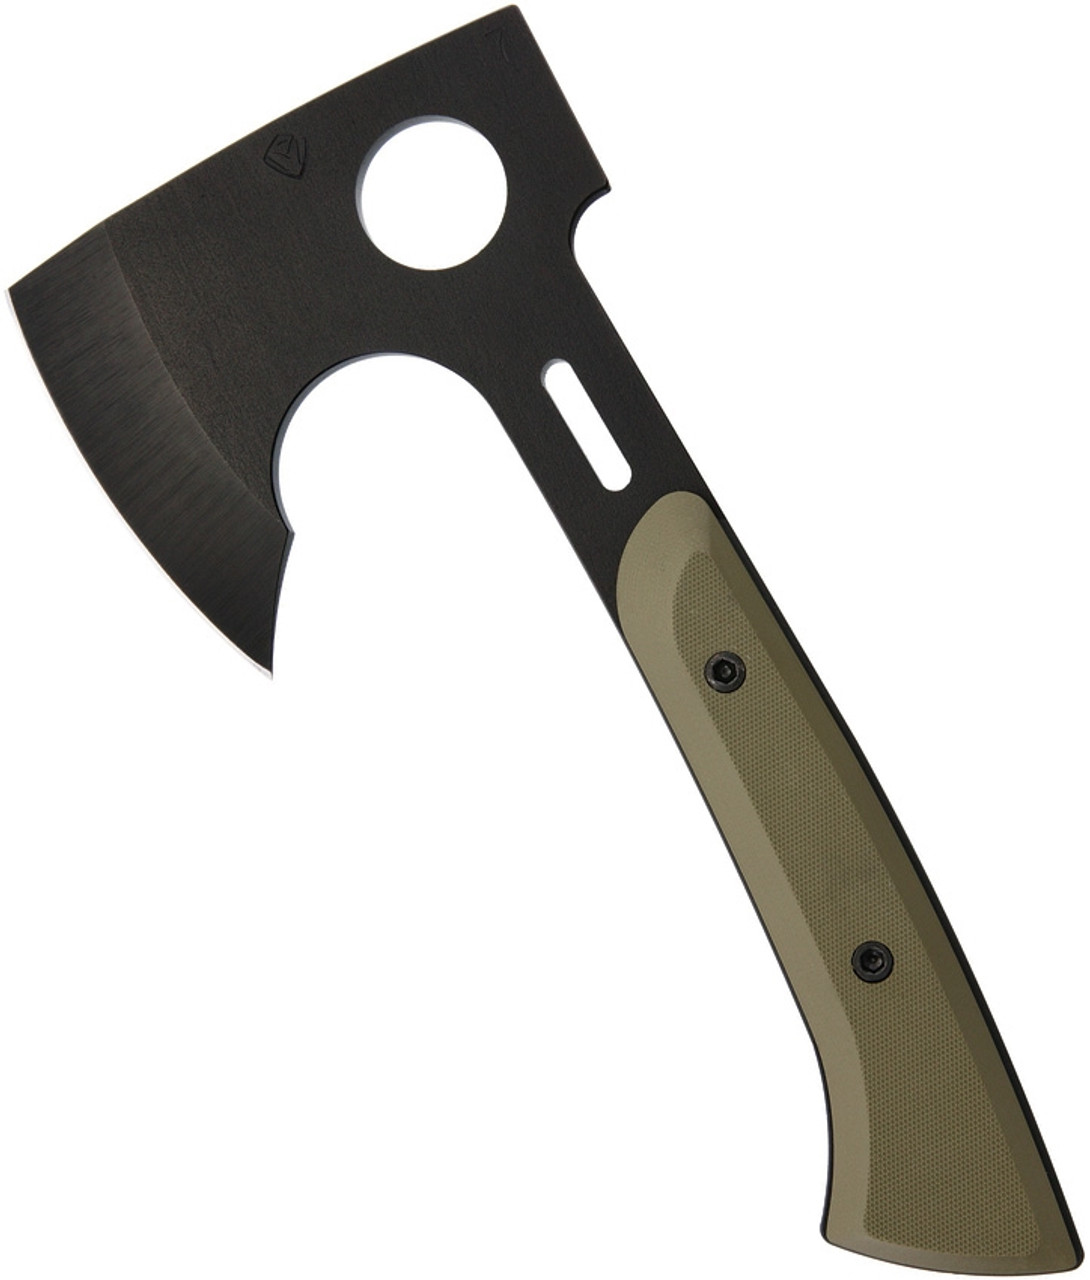 Medford Bearded Hatchet MD967P10KO, 3.5″  PVD Coated CPM S7 Steel,  Green G10 Handle w/ Sheath